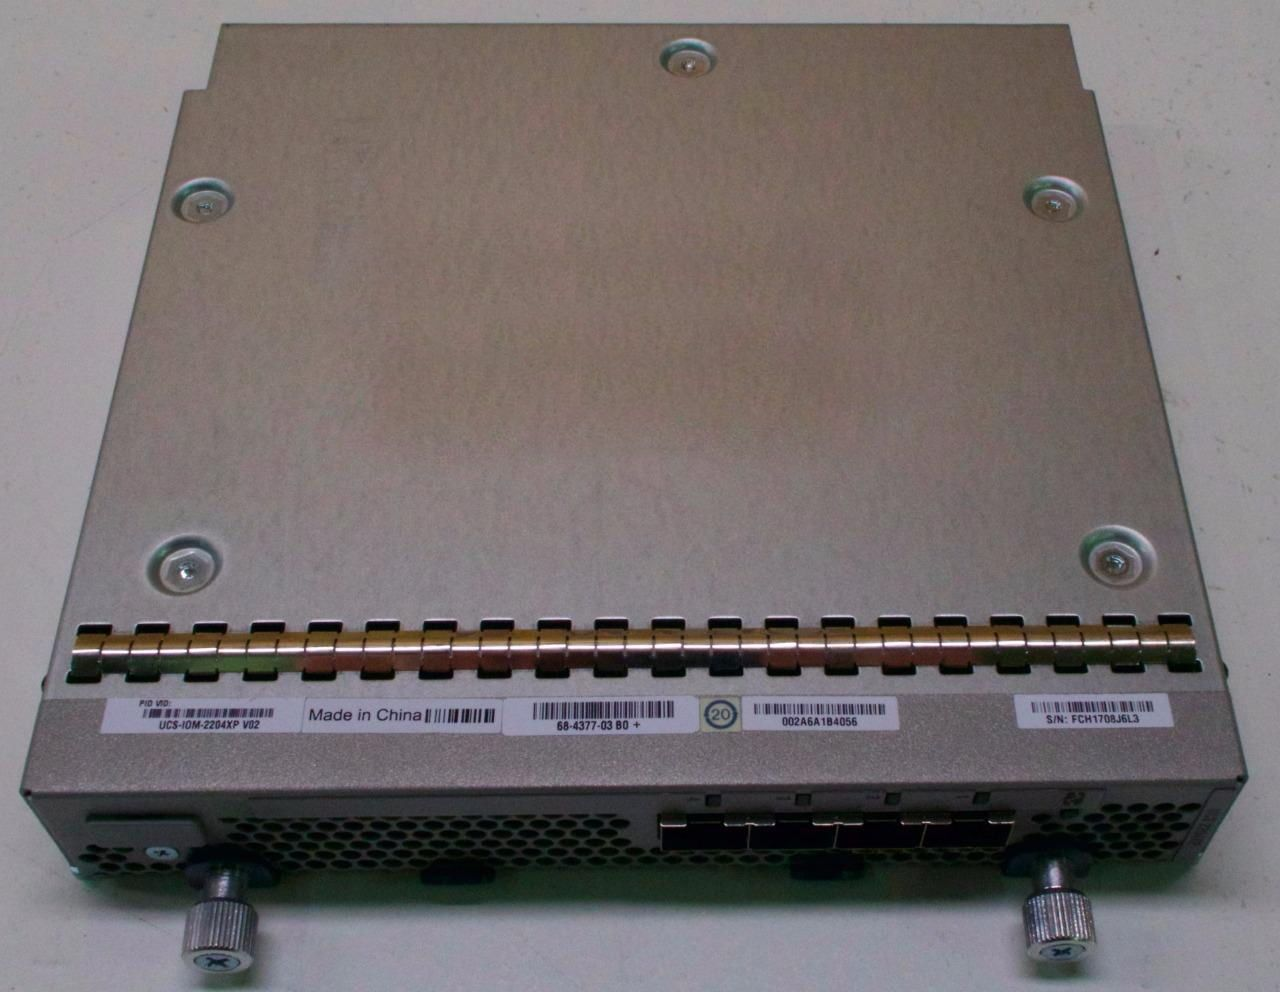 Cisco UCS-IOM-2204XP - Fabric Extender Expansion Module 4 Ports For Blades